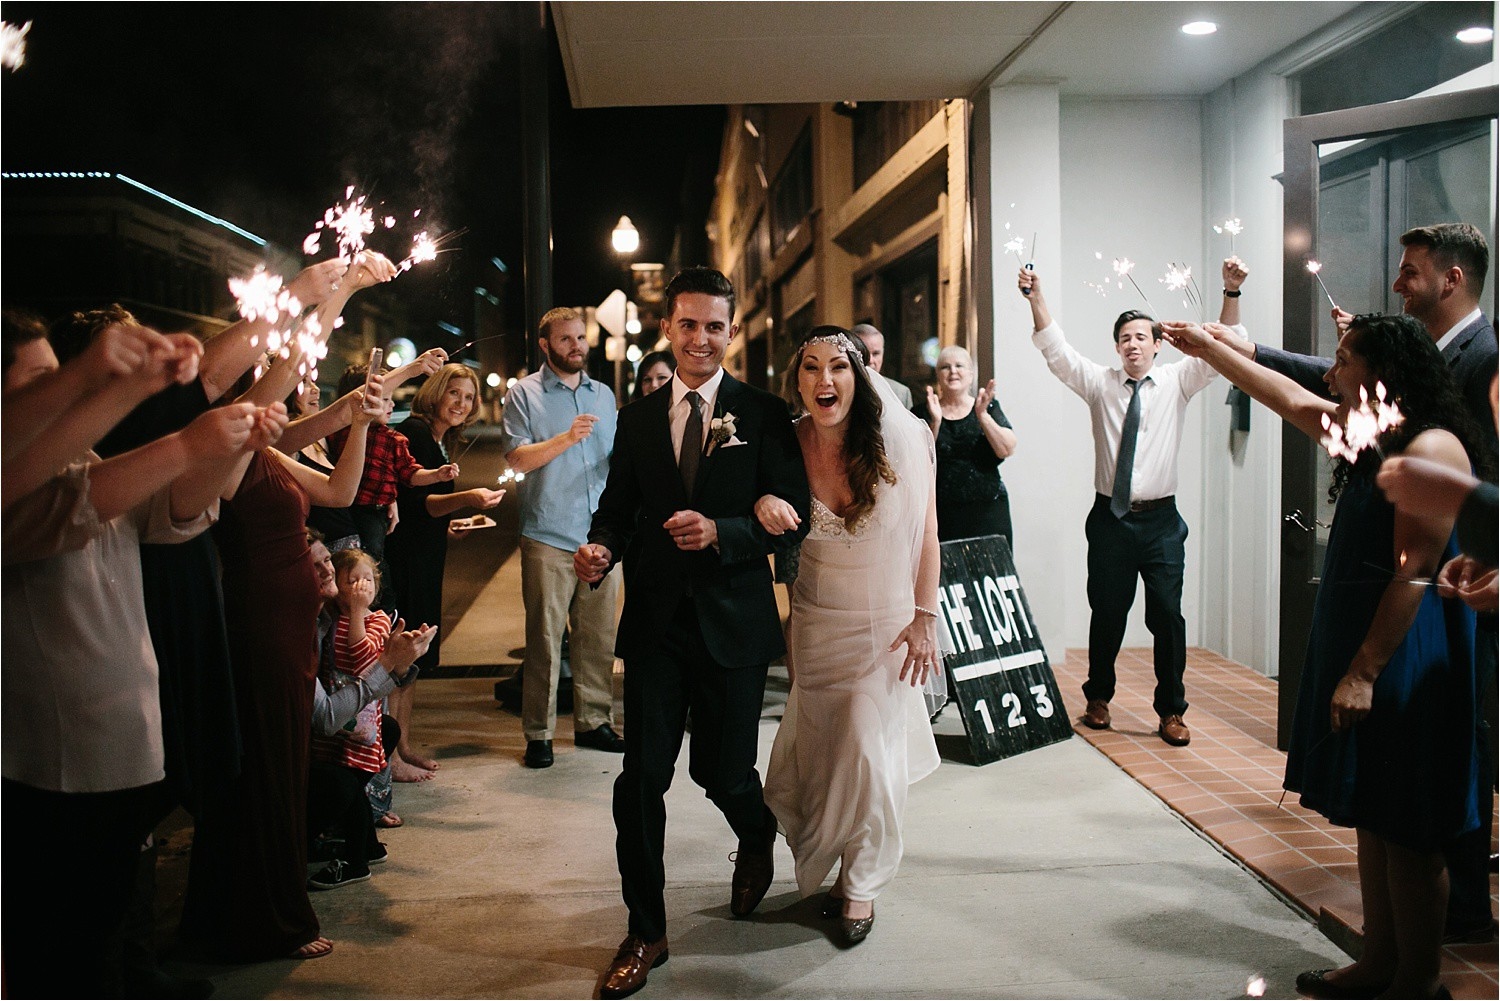 whittney-drew-__-an-intimate-wine-and-navy-wedding-in-an-industrial-venue-at-loft-123-in-paris-tx-by-north-texas-wedding-photographer-rachel-meagan-photography-_-105